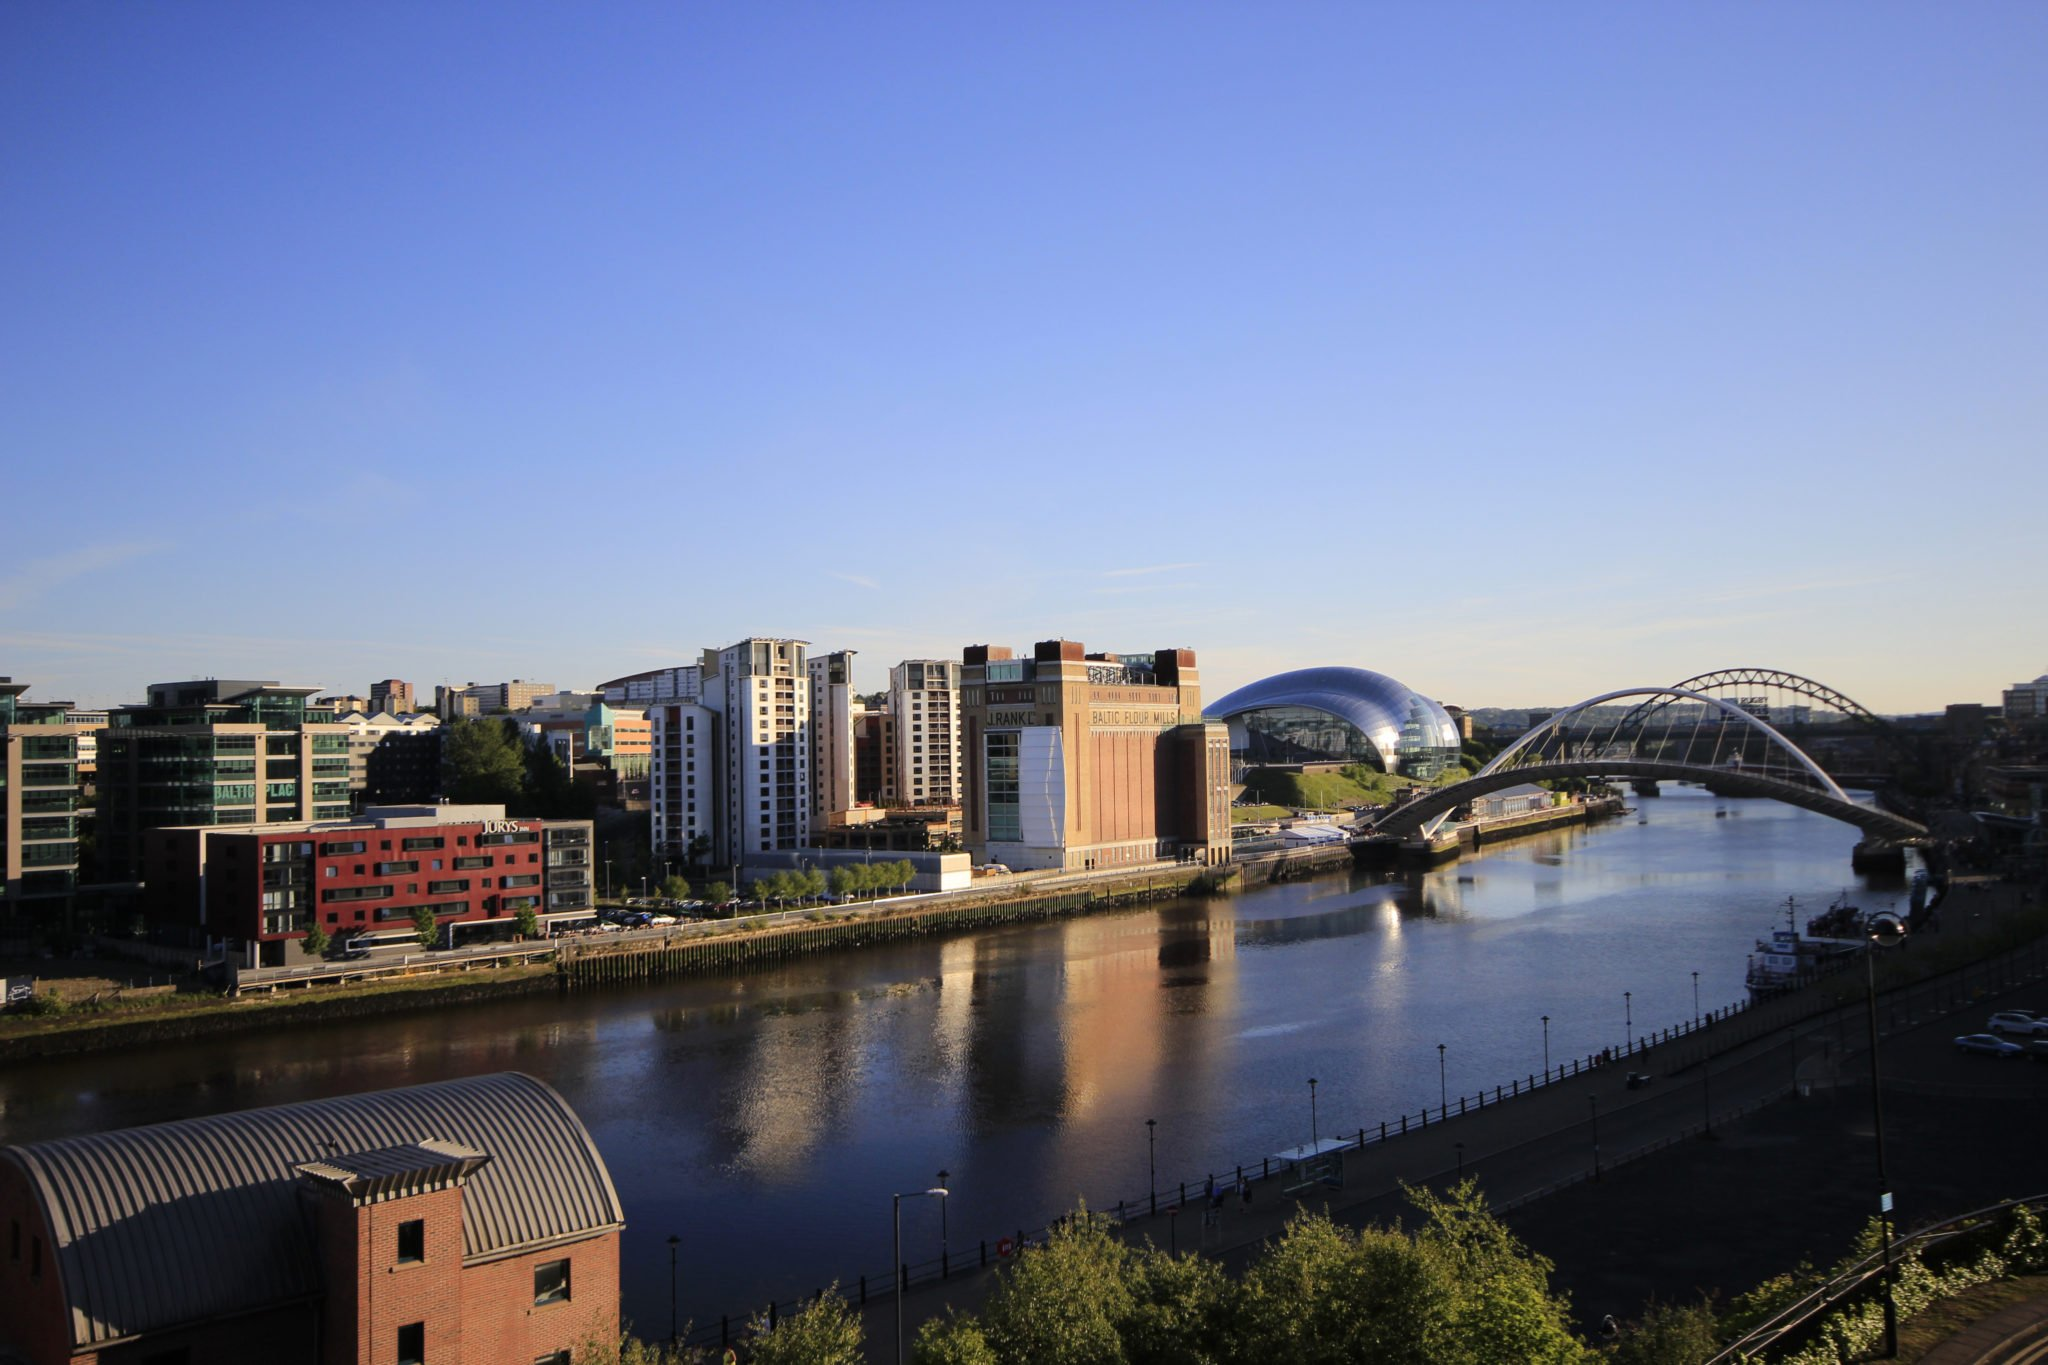 Short-Let-Apartments-Newcastle-UK-available-Now!-Book-Serviced-Accommodation-in-North-England-today-at-cheaper-than-a-Hotel!-Parking,-Wifi,-All-bills-incl!-Urban-Stay